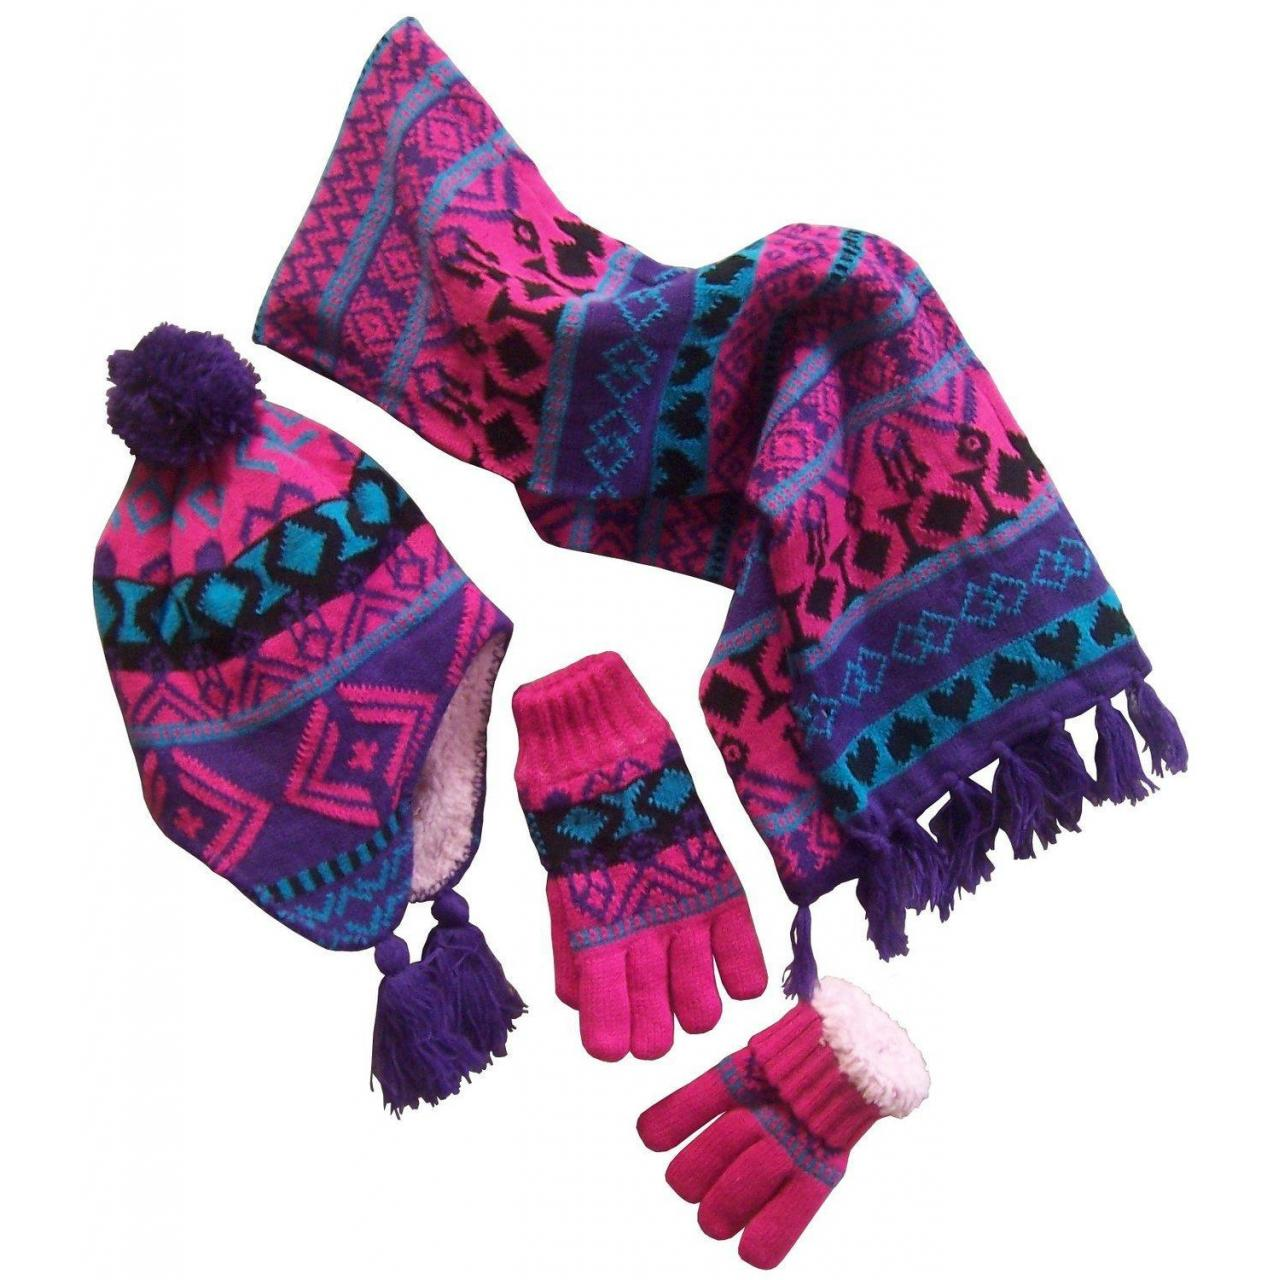 Cheap jacquard knitting knitted caps gloves scarves set for sale